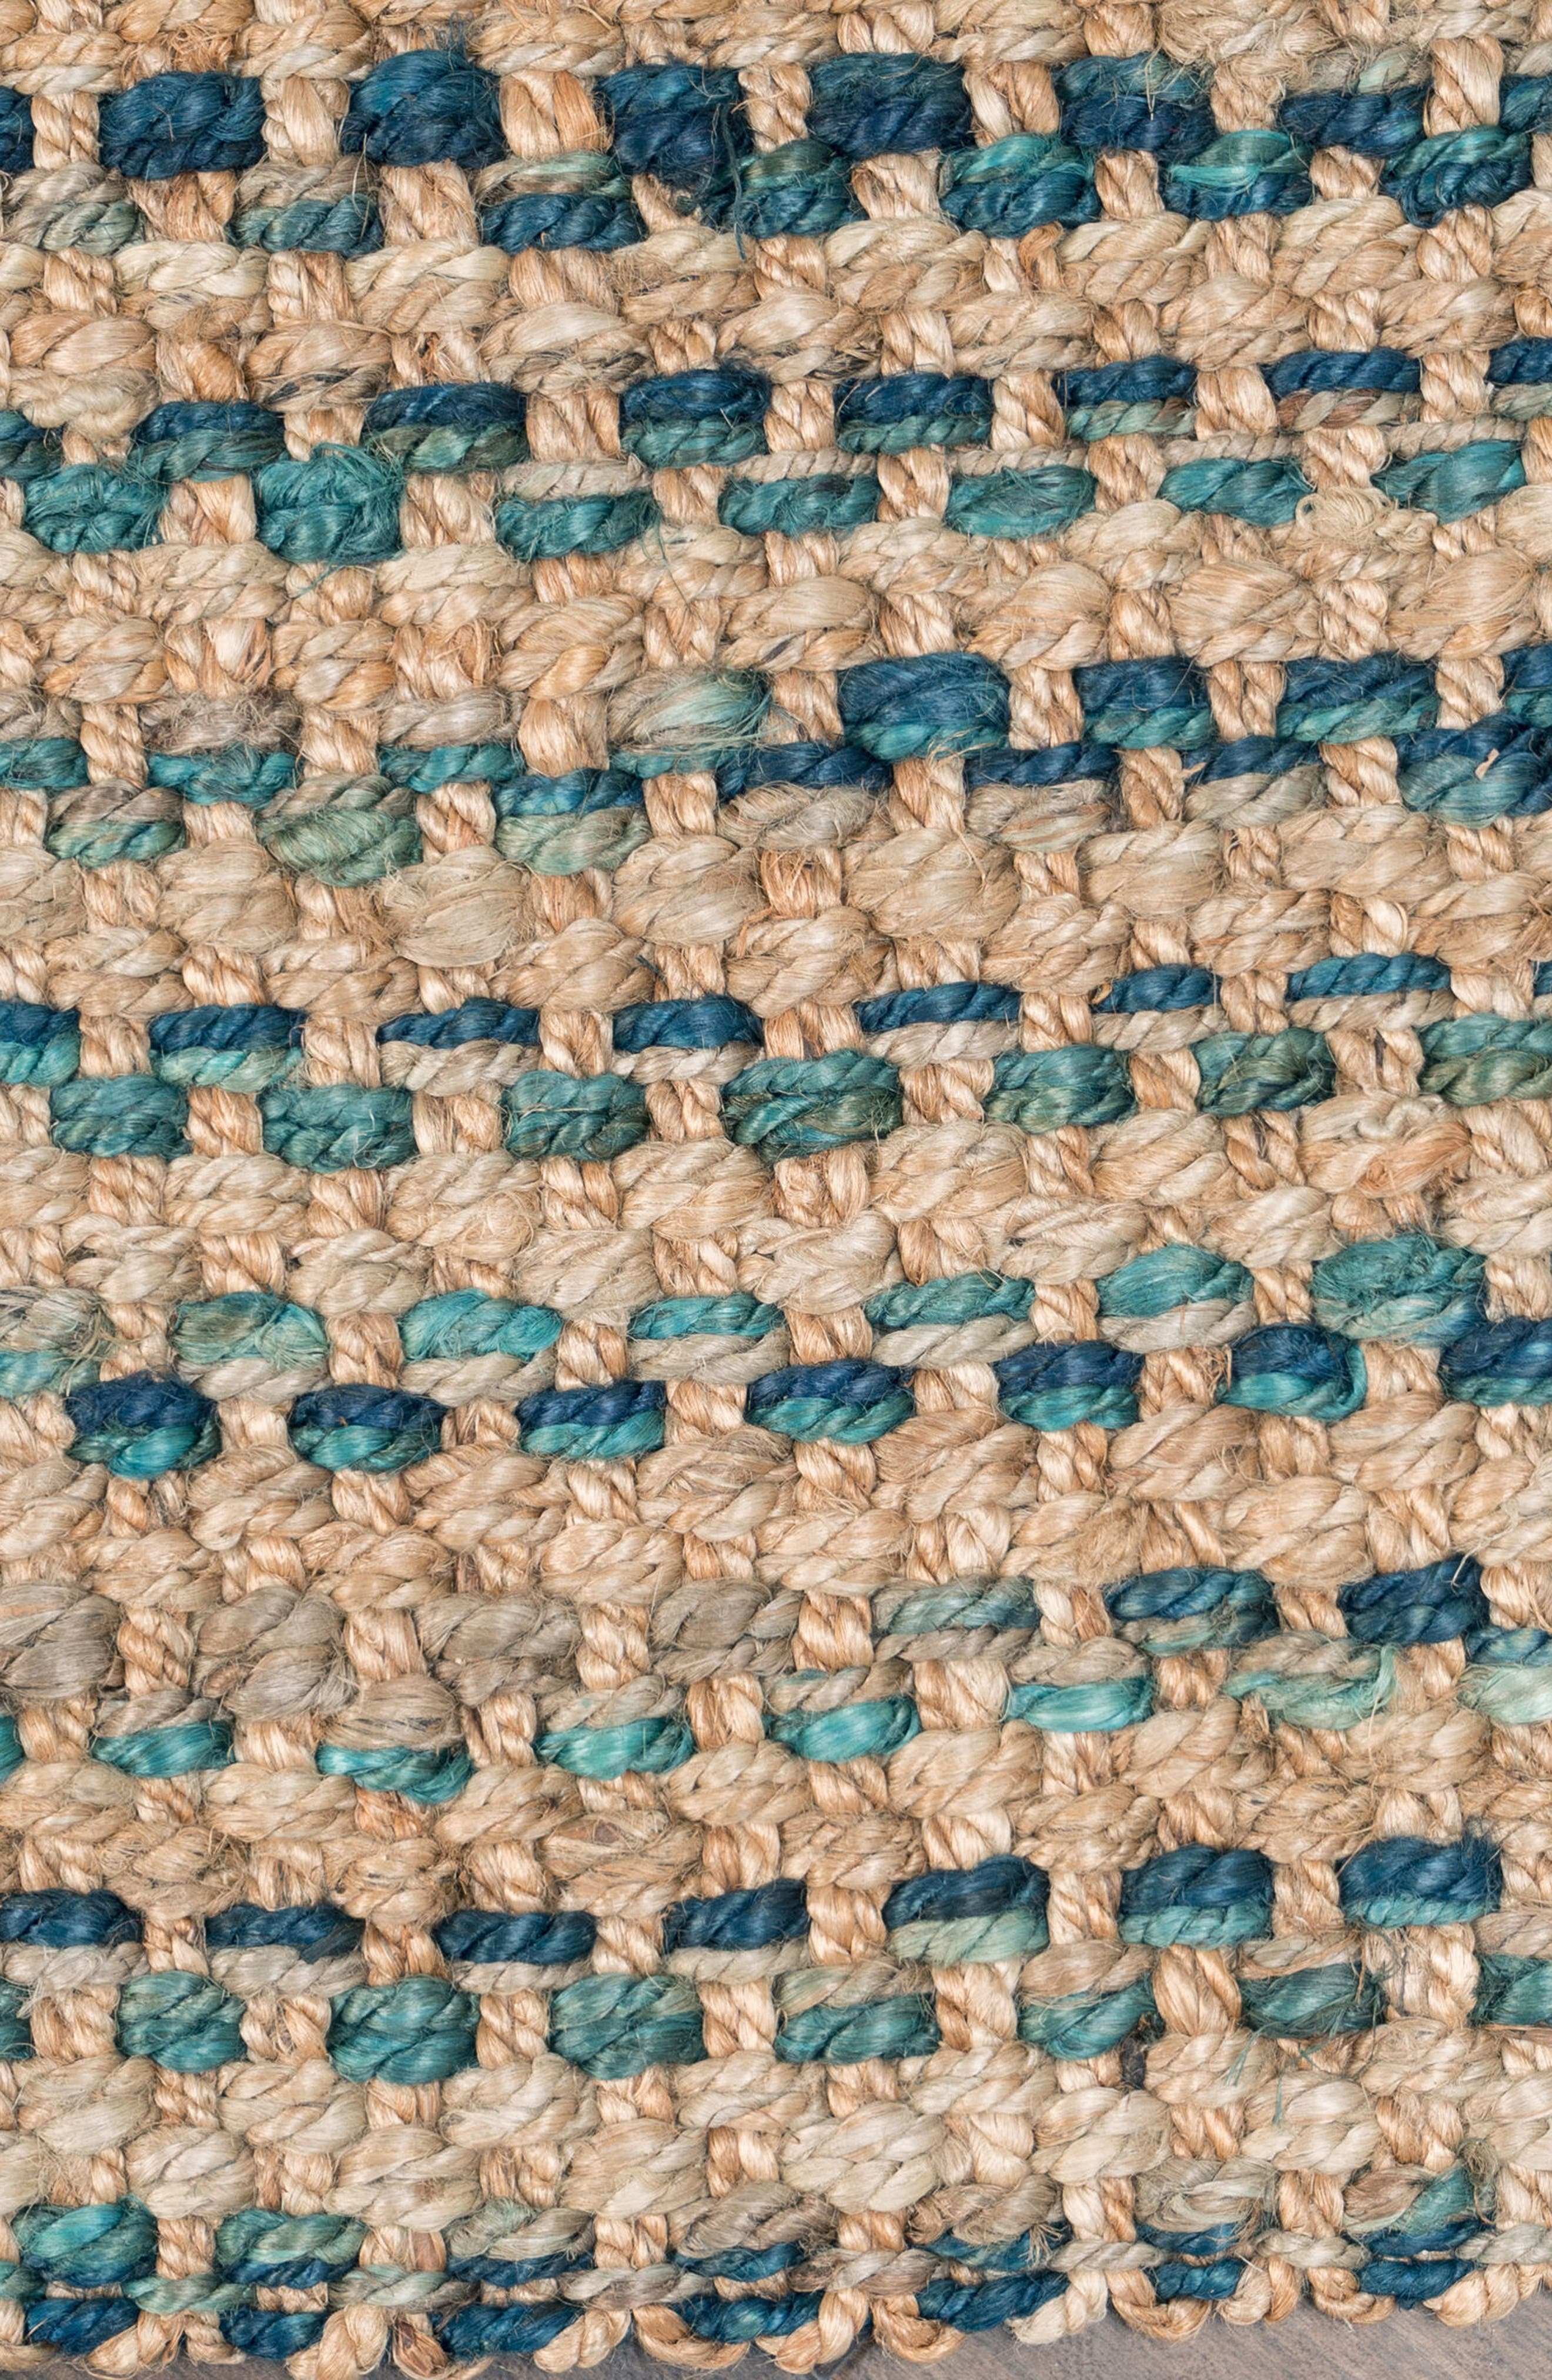 Ladera Handwoven Rug,                             Alternate thumbnail 3, color,                             Navy/ Turquoise